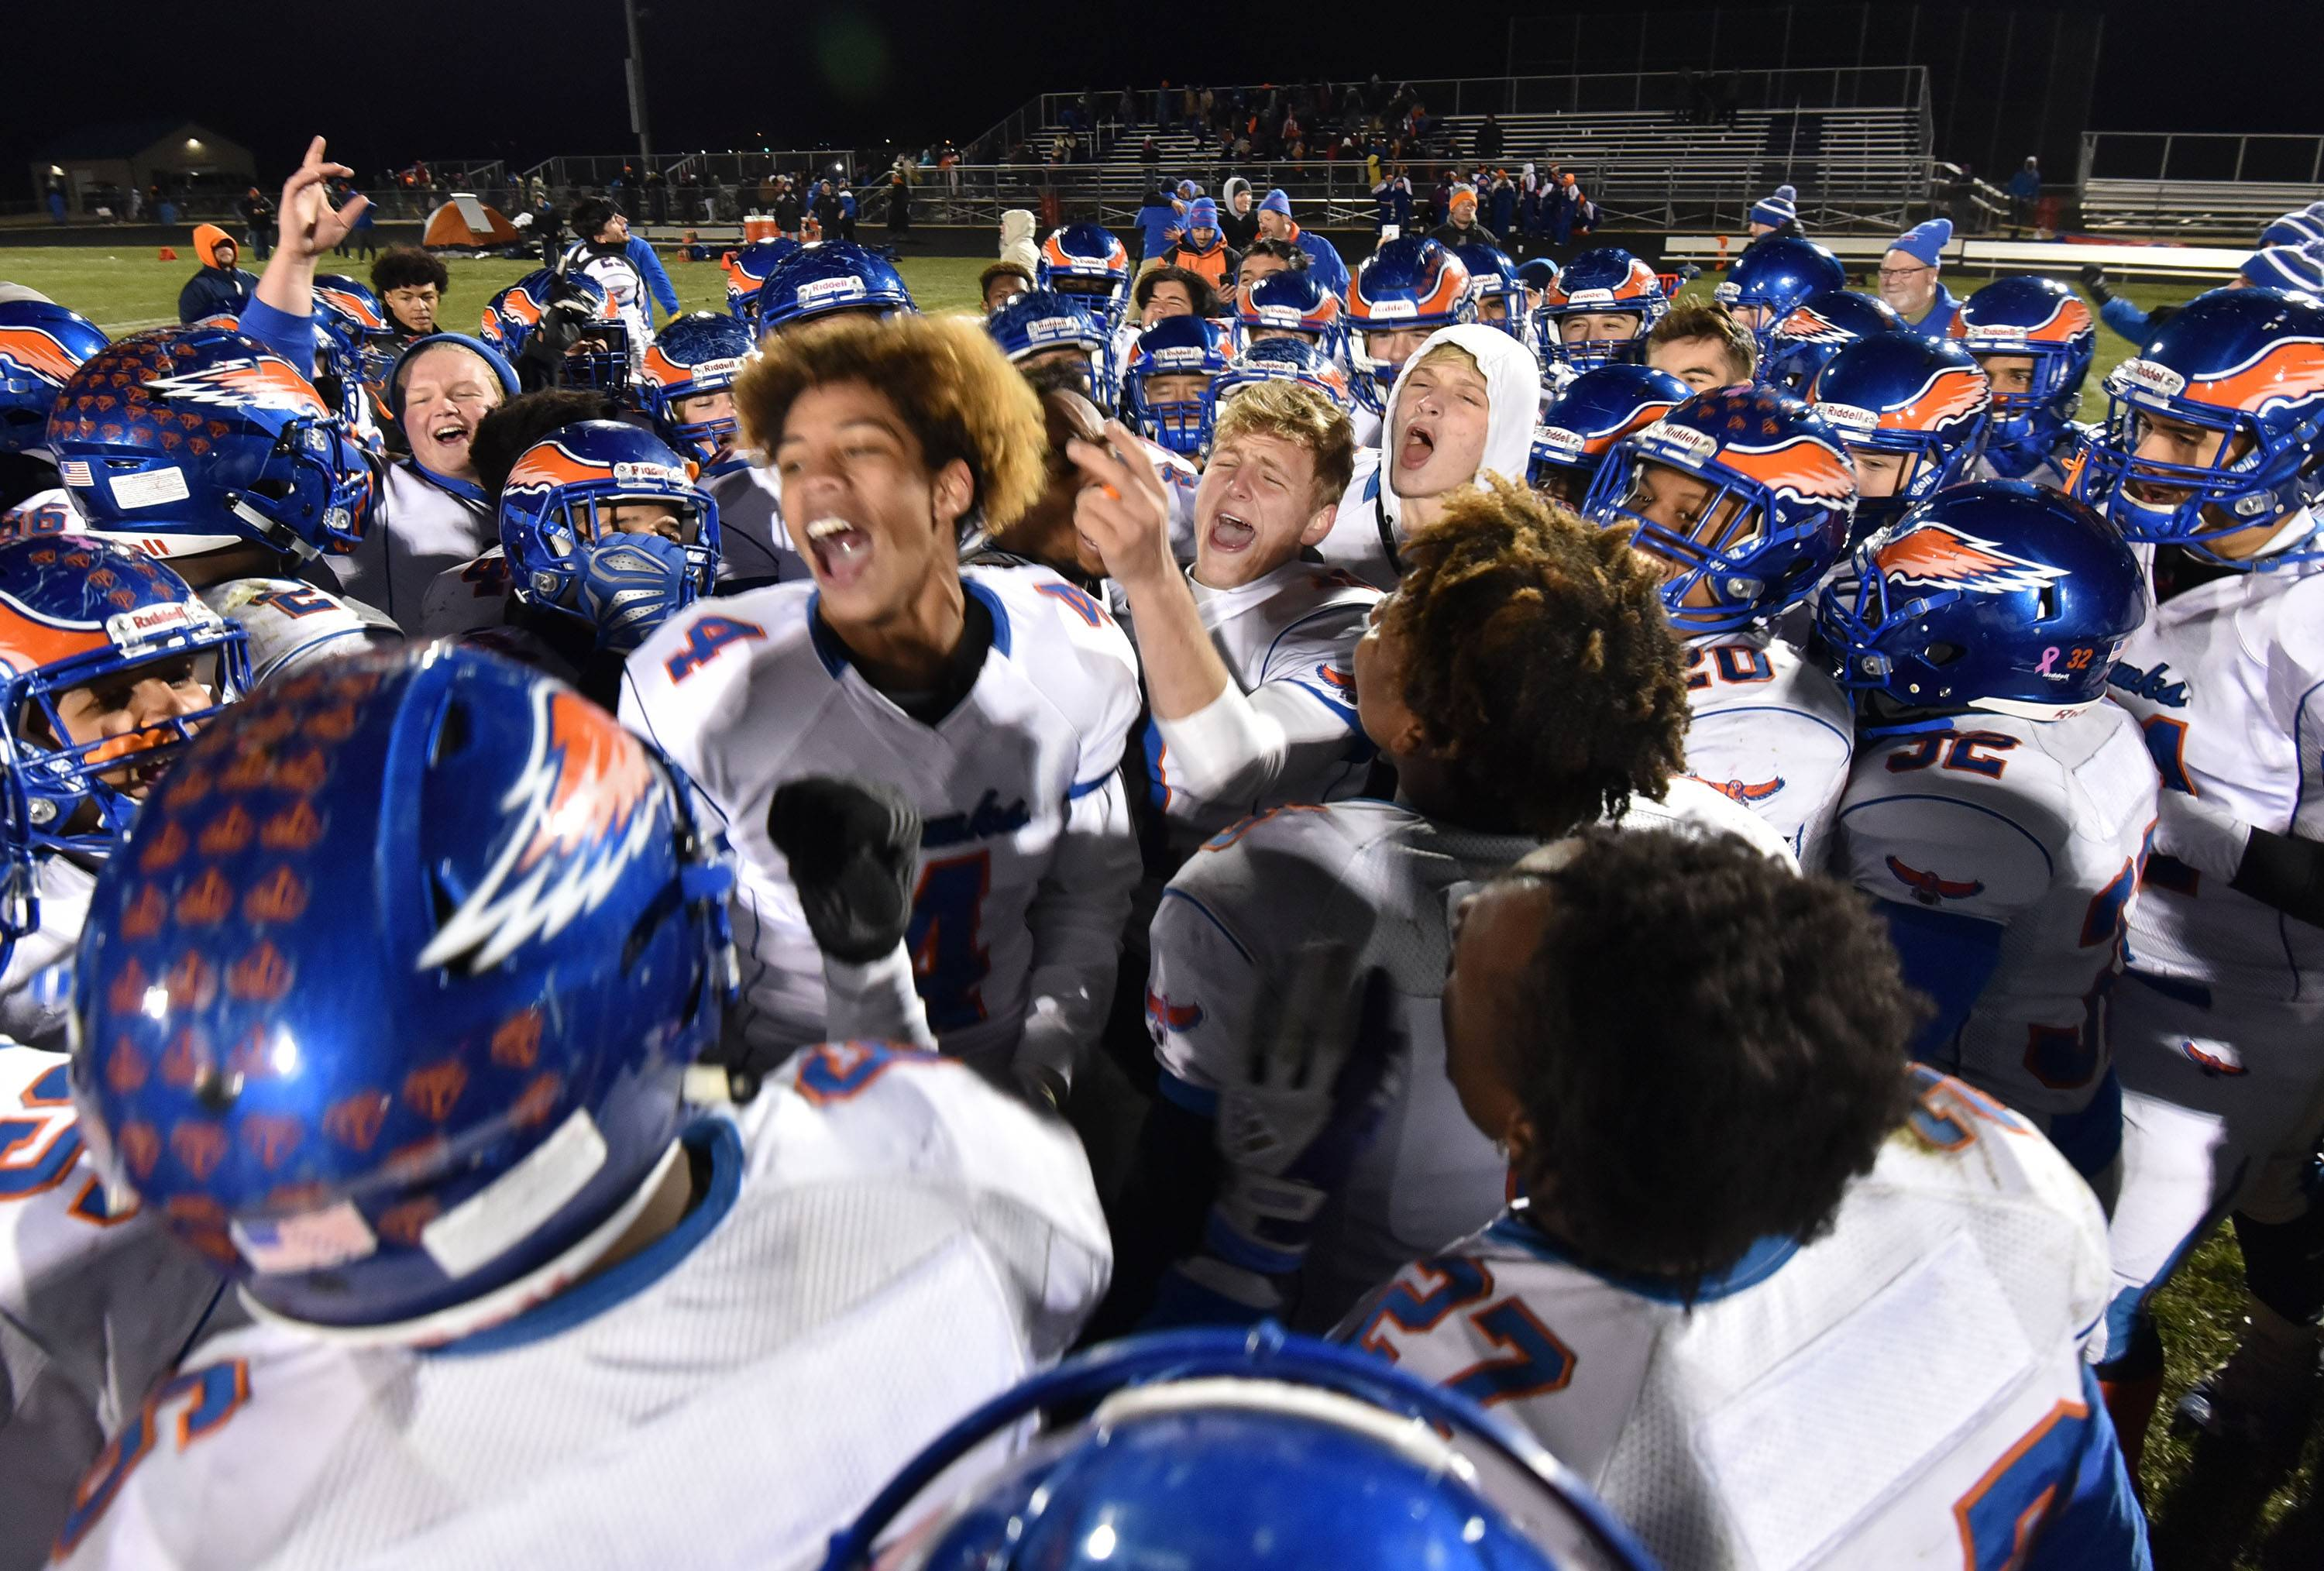 Hoffman Estates quarterback Austin Coalson points as he celebrates with teammates after the Hawks topped host Belvidere North 35-10 on Saturday in the Class 6A state quarterfinals.